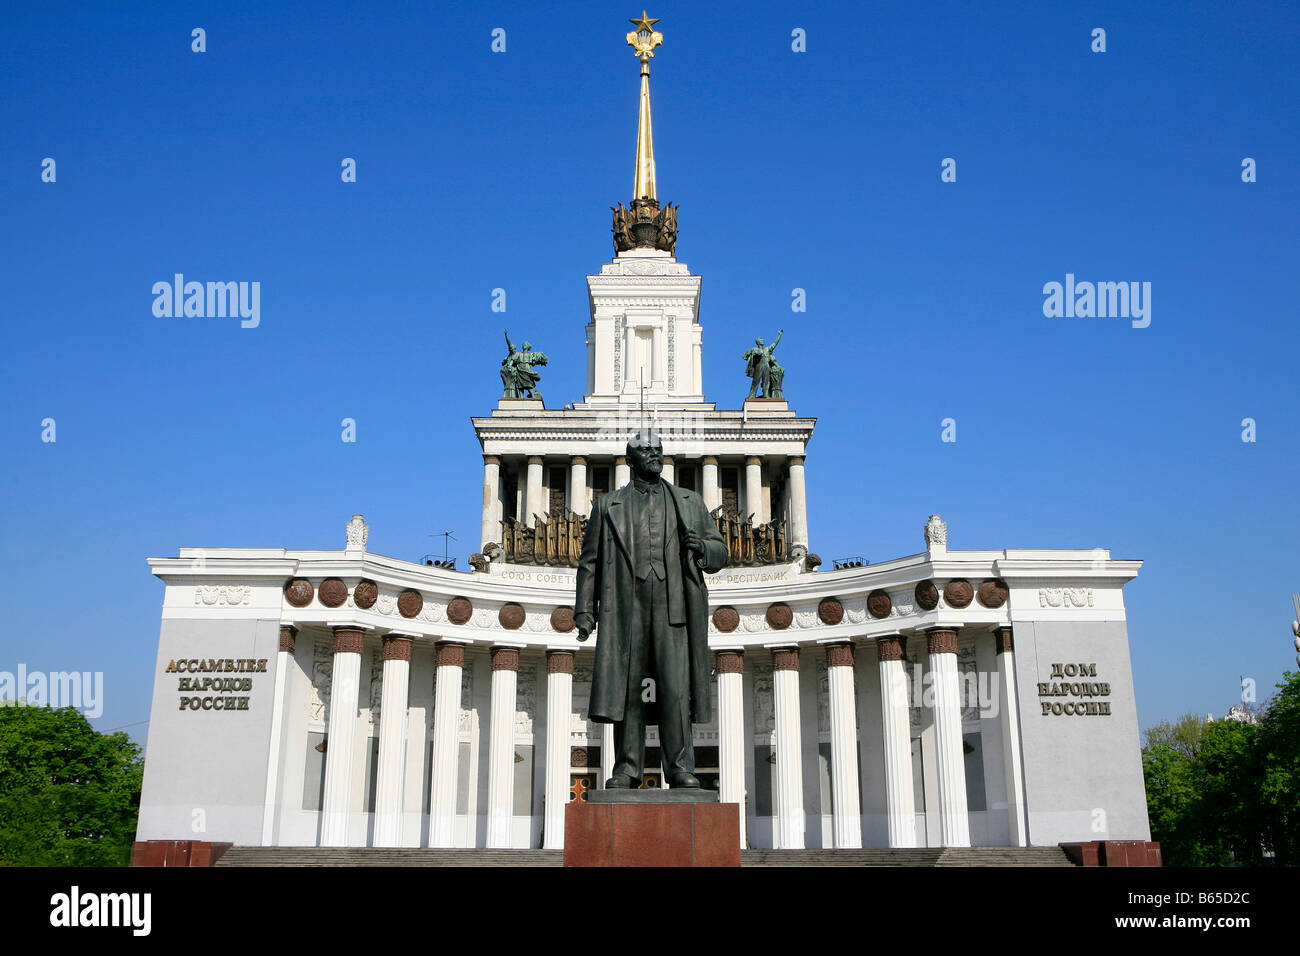 Statue of Vladimir Lenin (1870-1924) at the All-Russia Exhibition Center in Moscow, Russia Stock Photo